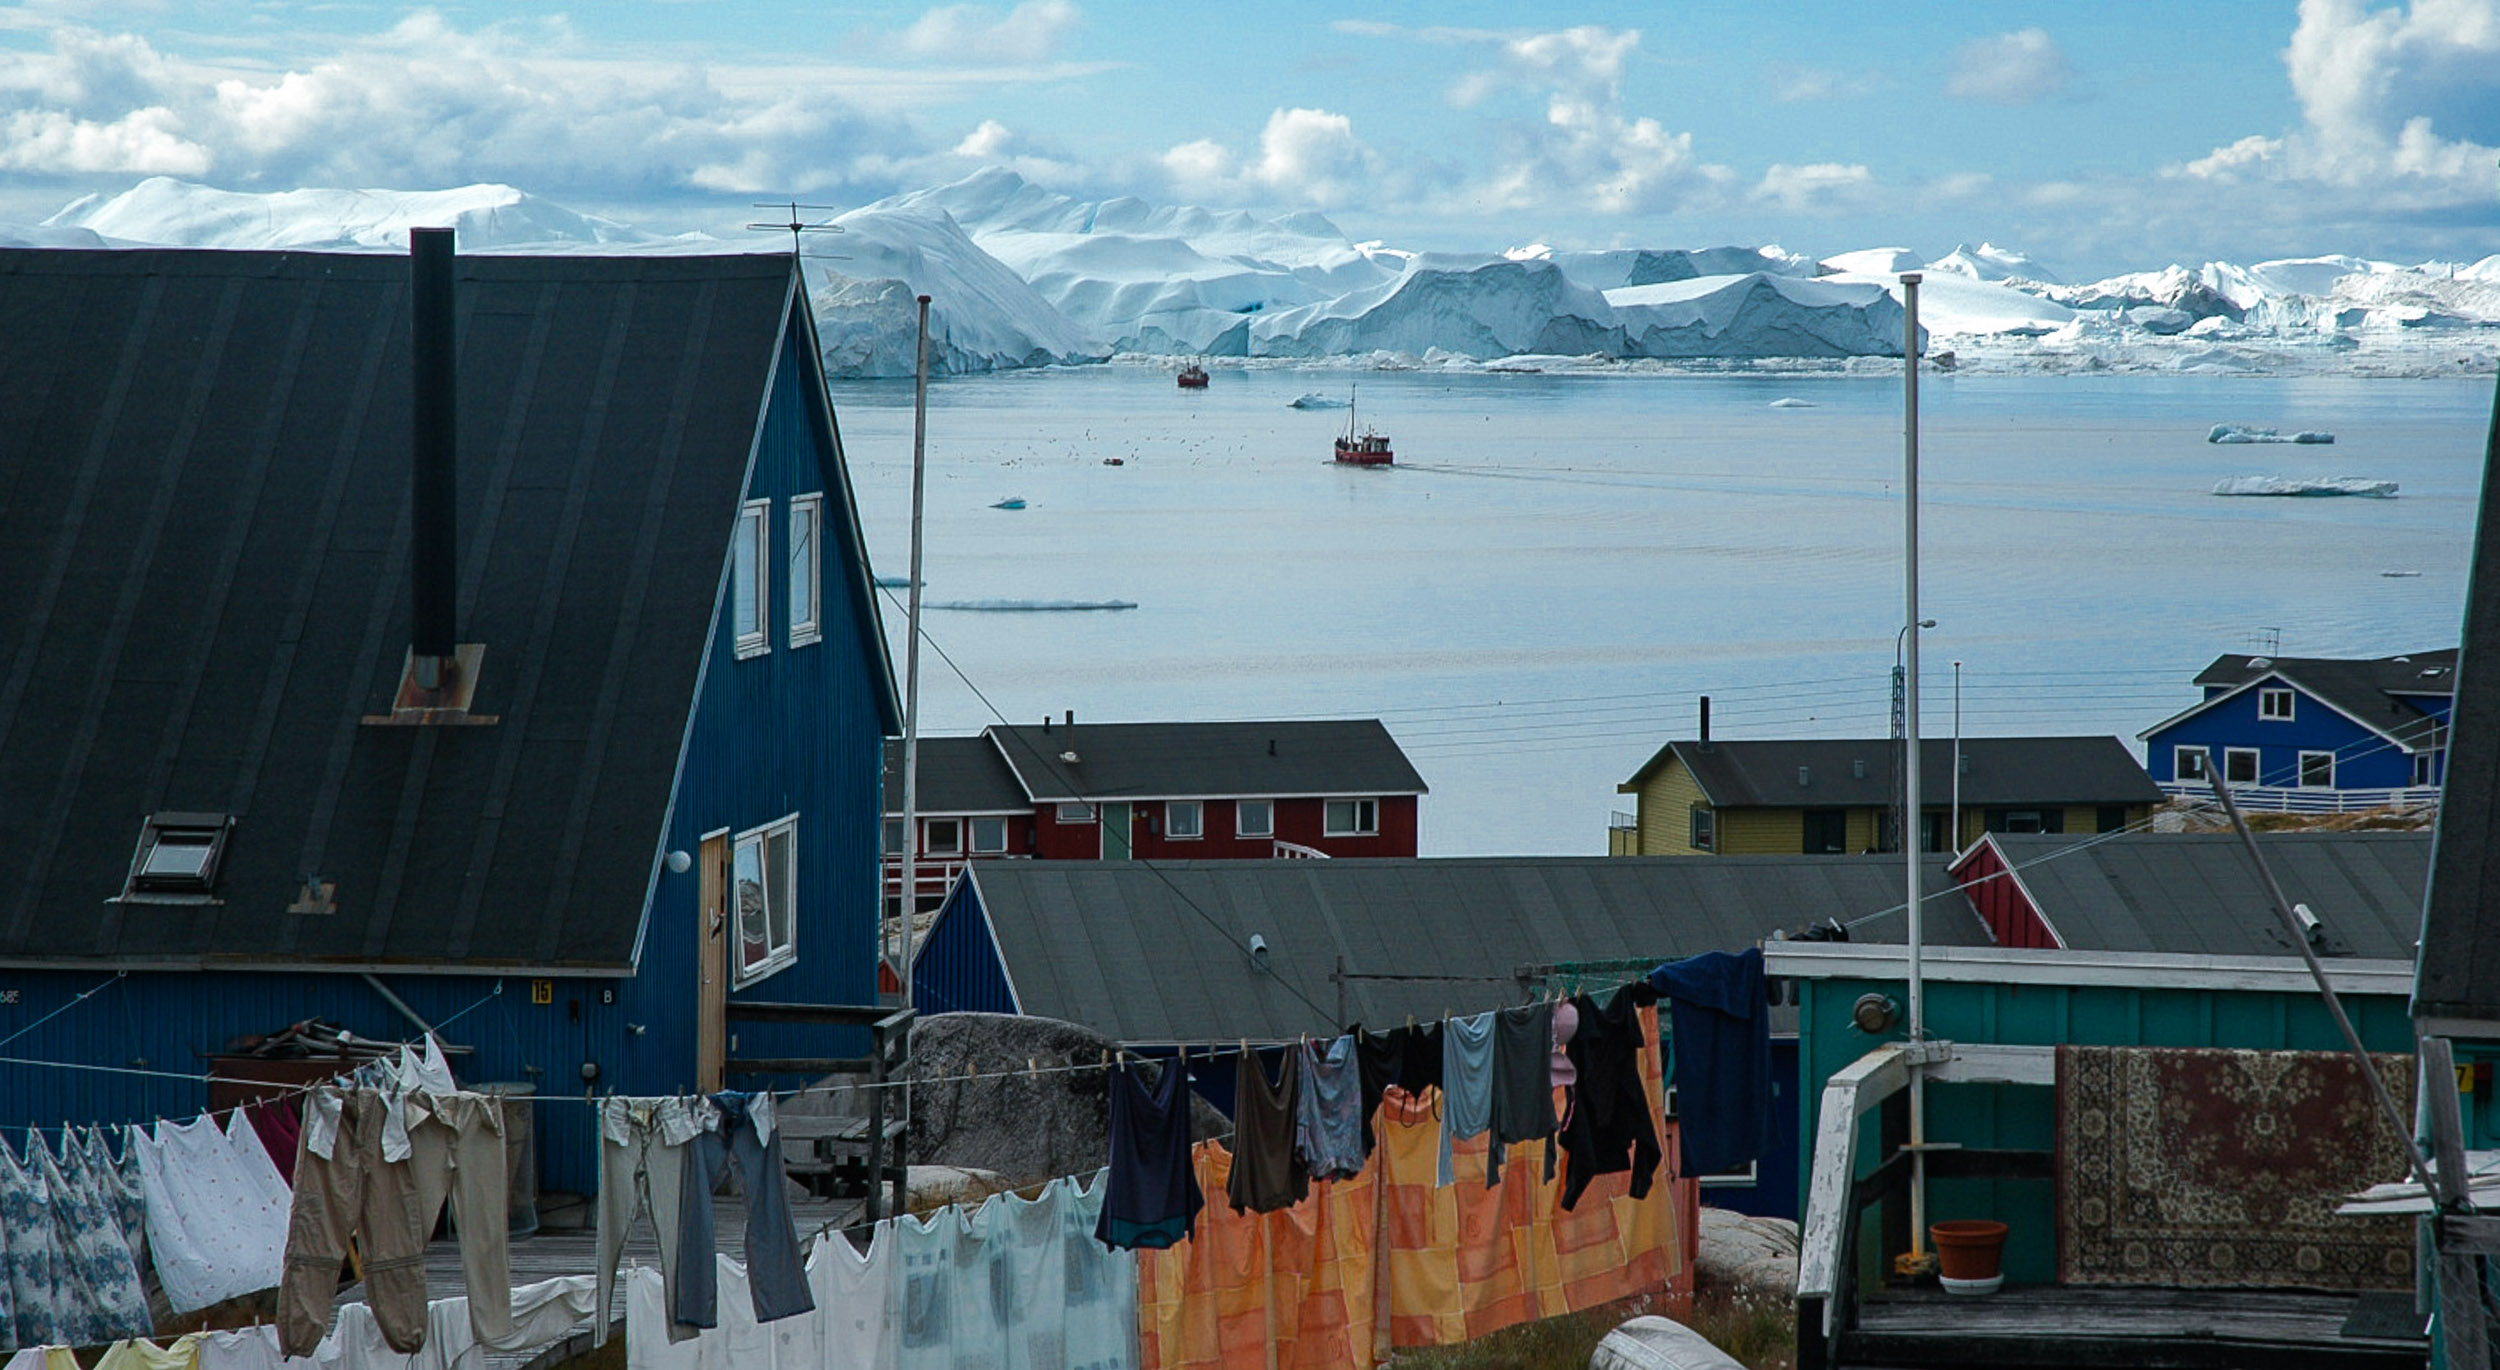 Ilulissat, North-West Greenland. Home to 5000 people. JONAA©Kristjan Fridriksson